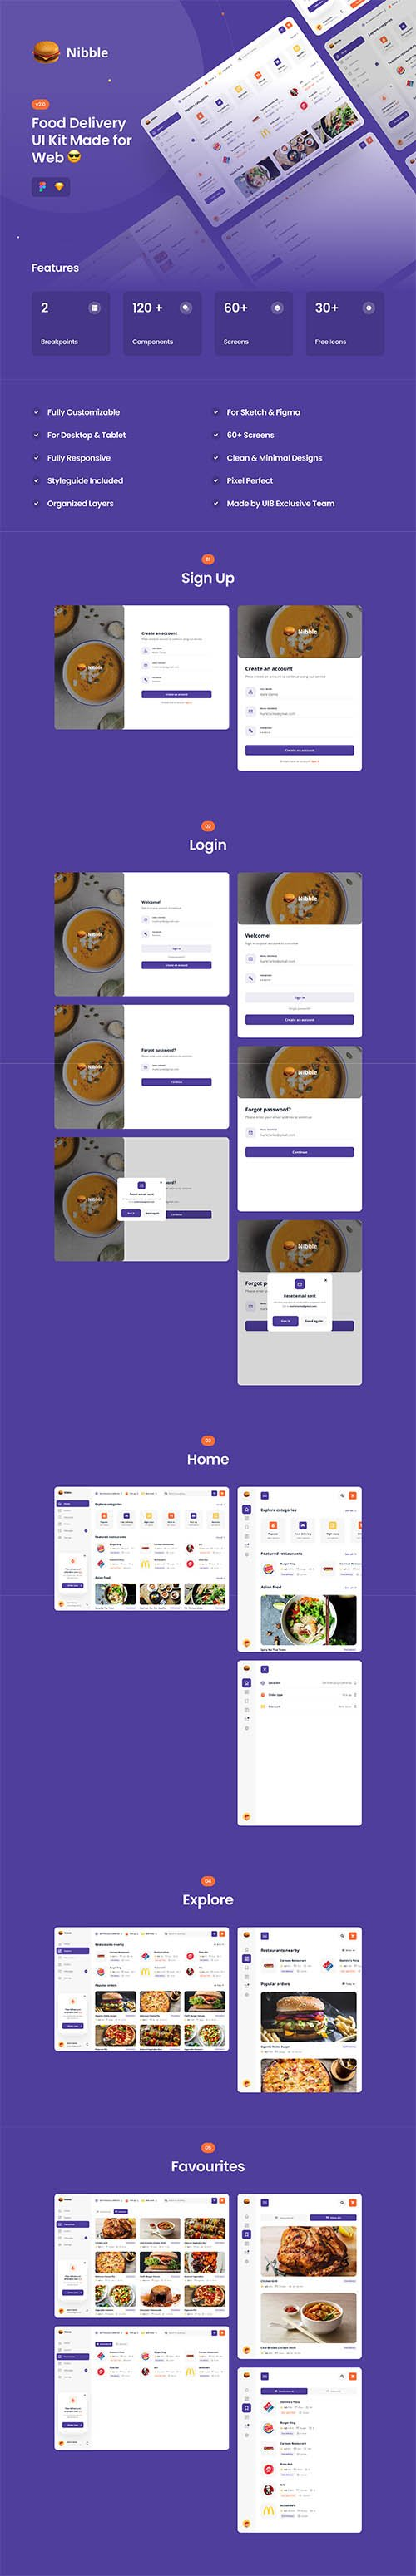 Nibble: Food Delivery Web UI Kit